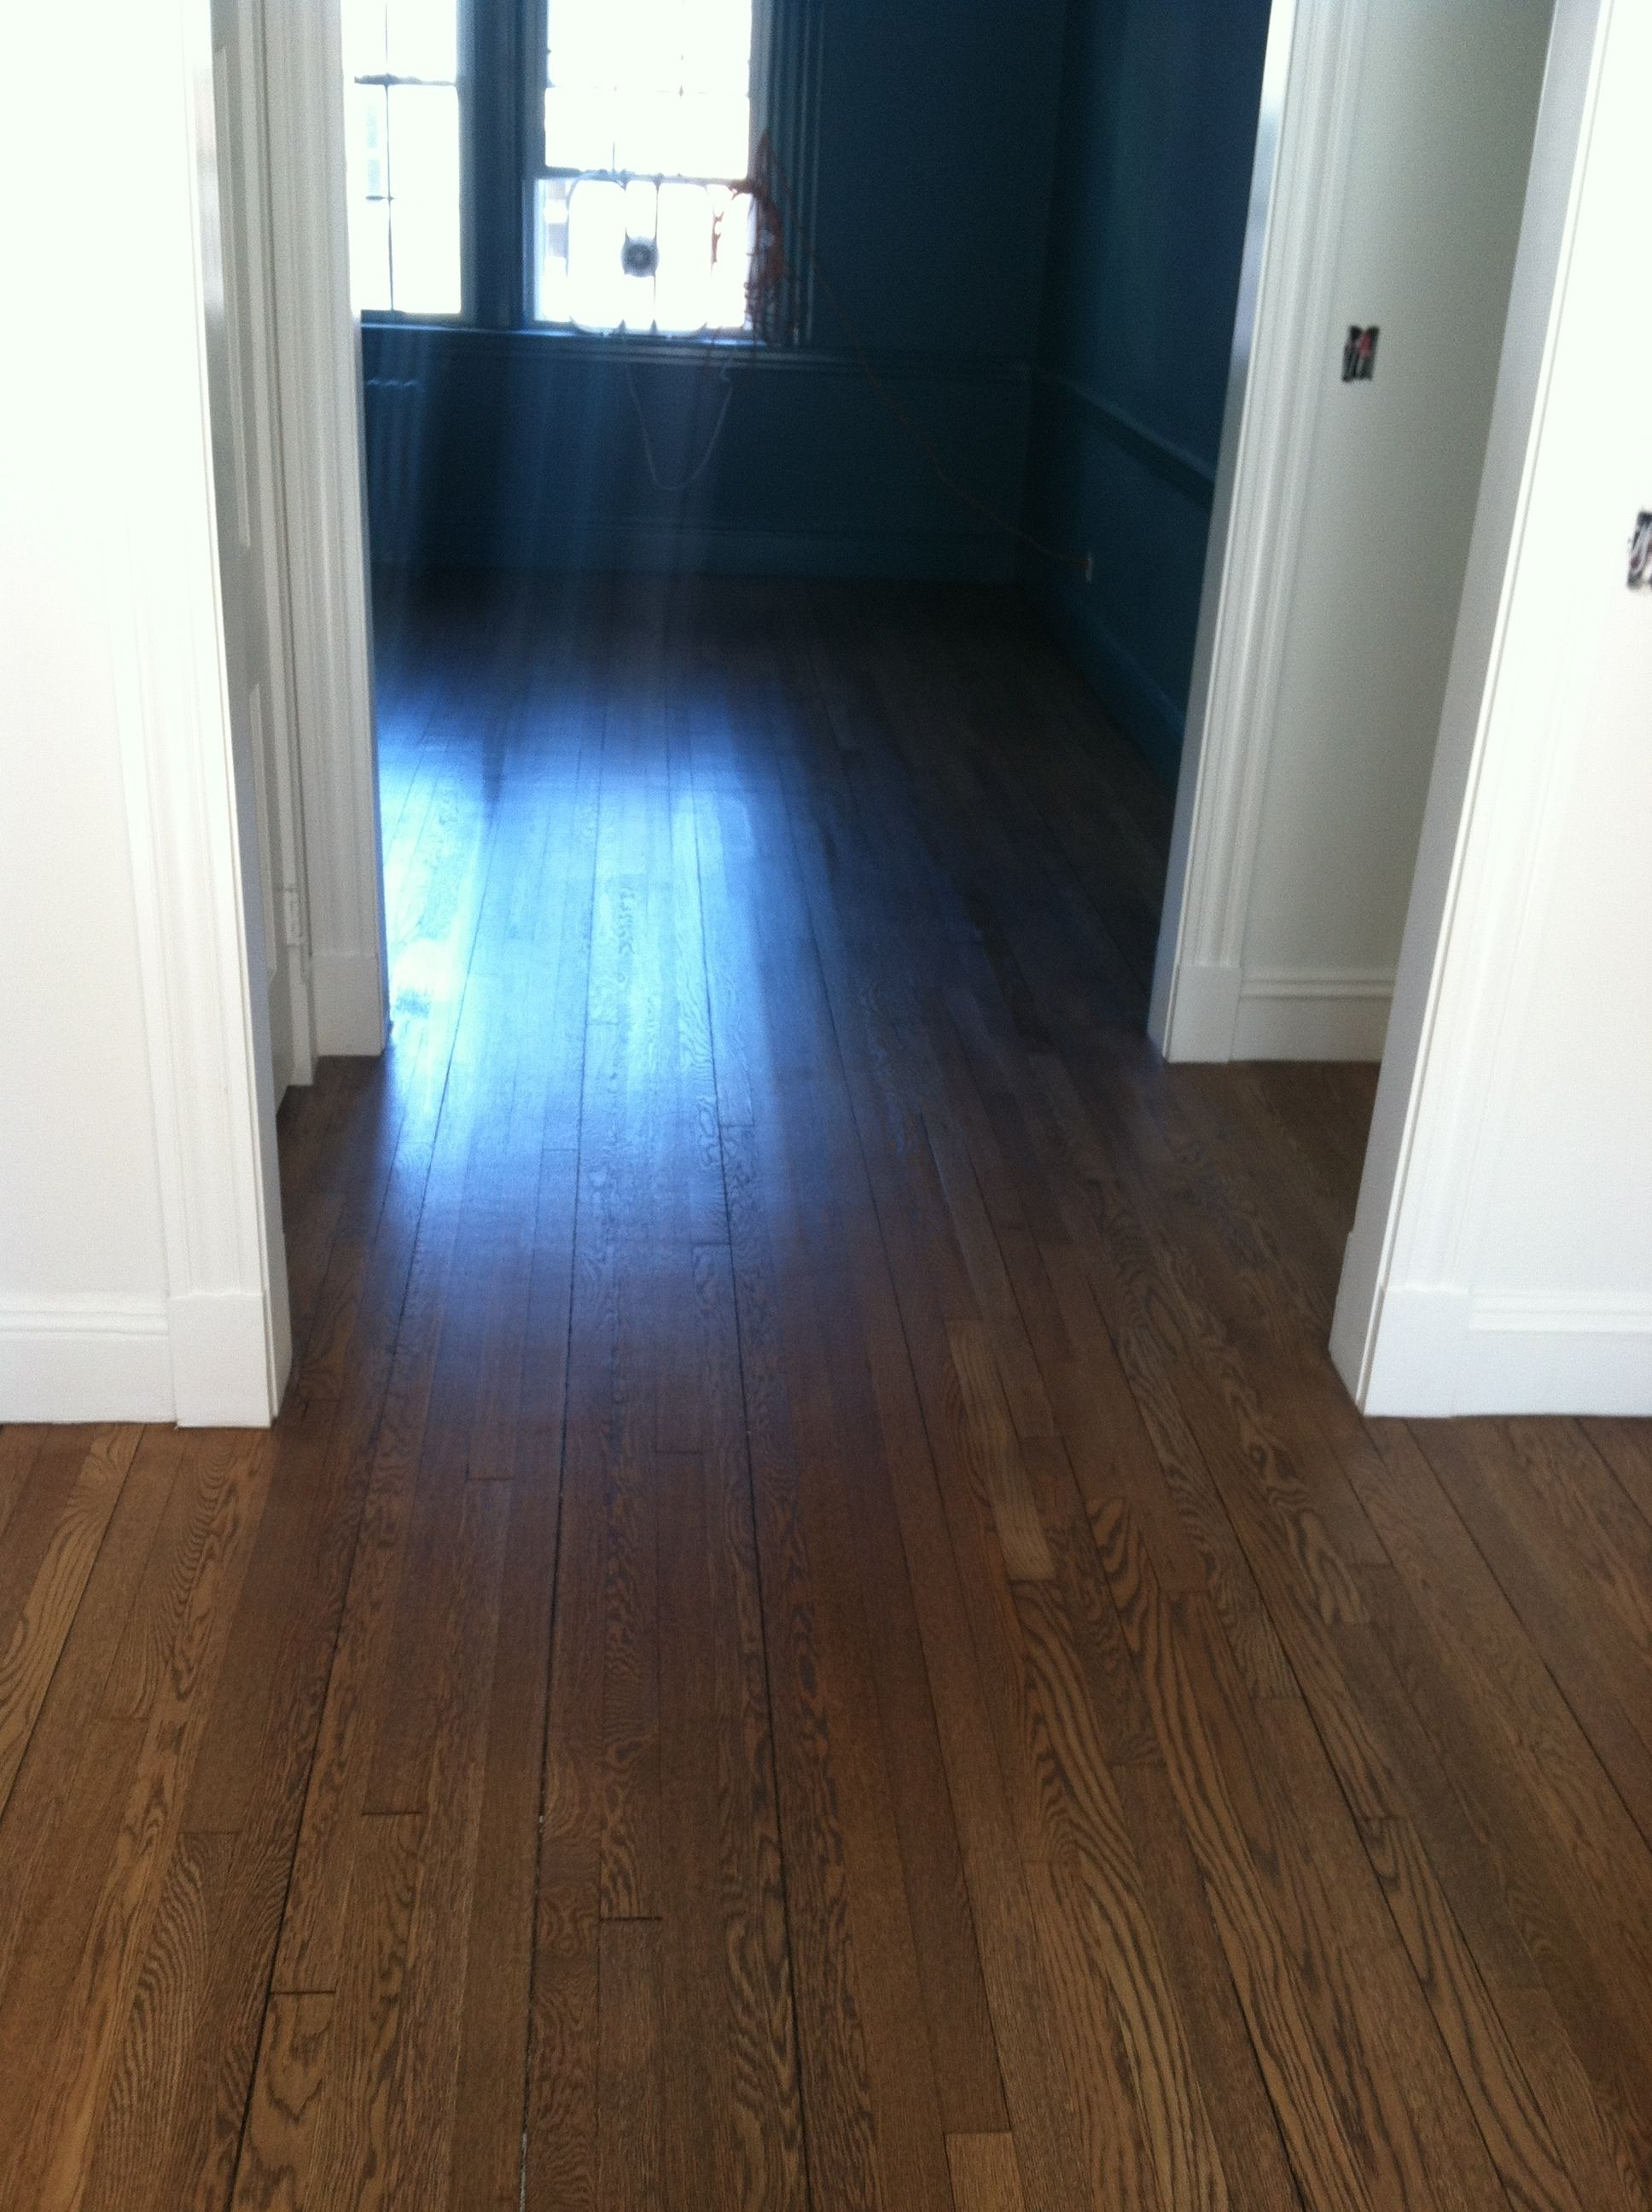 Pin By Lauren Brown On Home Is Wherever I M With You Hardwood Floors Flooring Wood Floor Colors